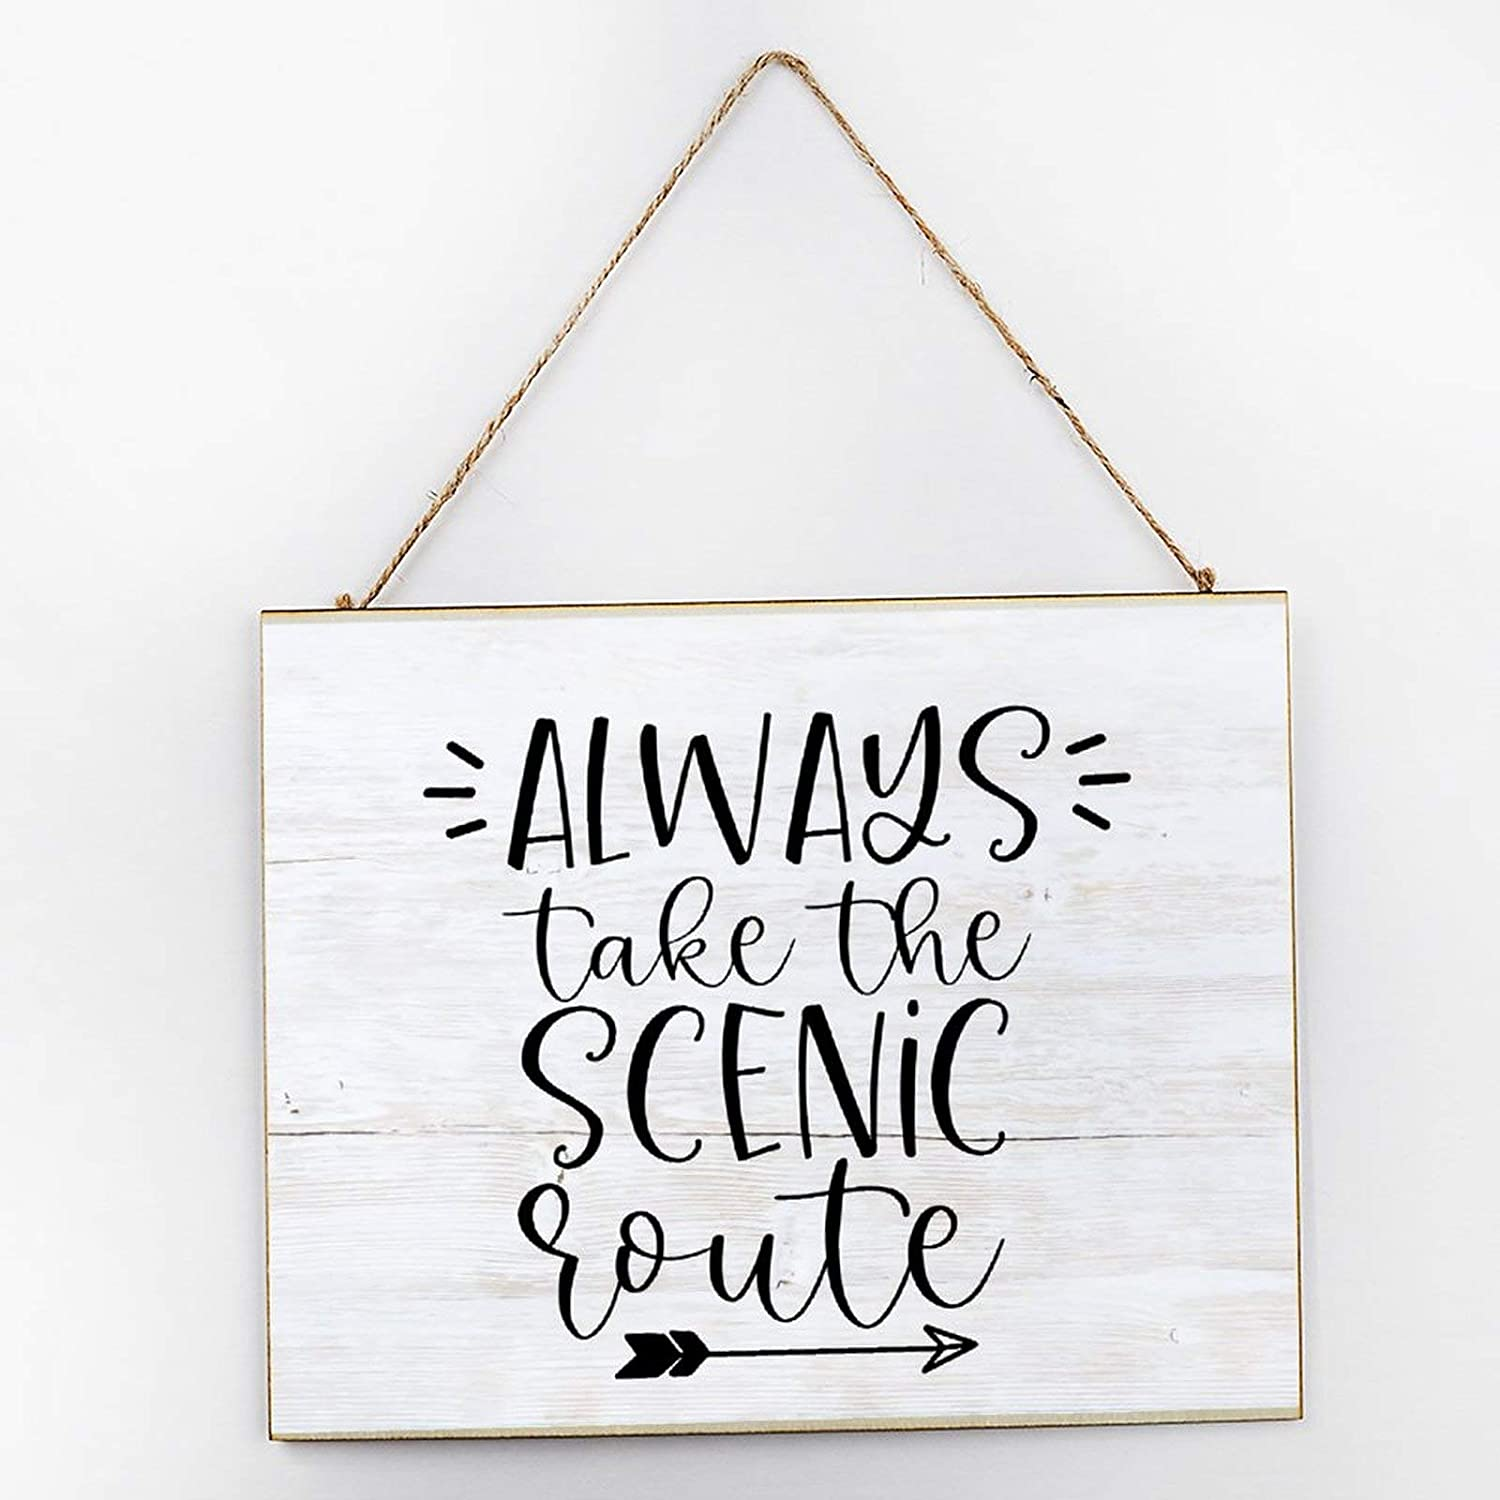 NOT BRANDED Always Take The Scenic Route Rustic Made Vintage Wooden Decor Wood Sign 10×12×2 inch